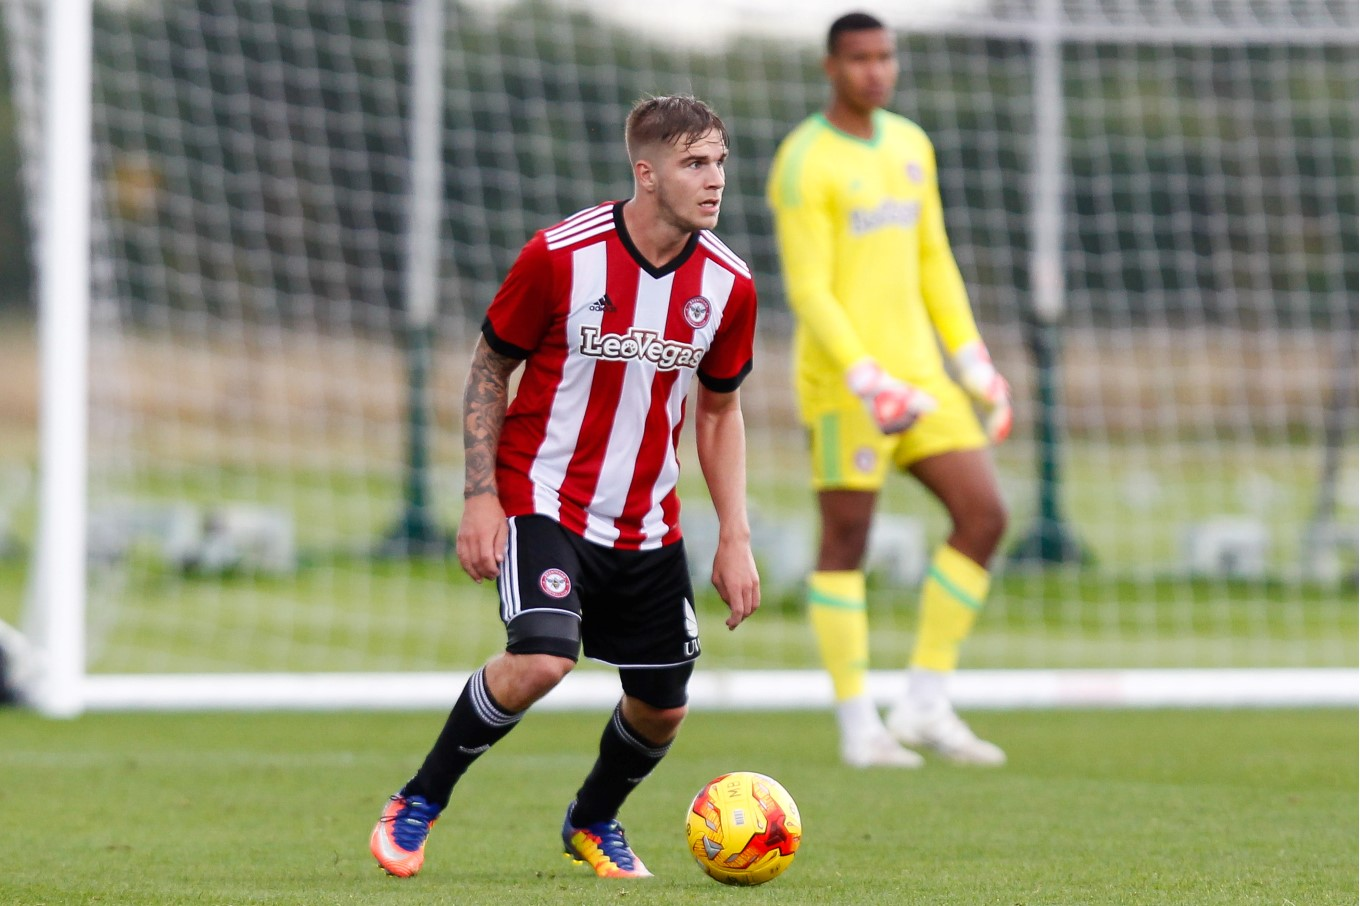 Jan Holldack returns to Germany - News - Brentford FC